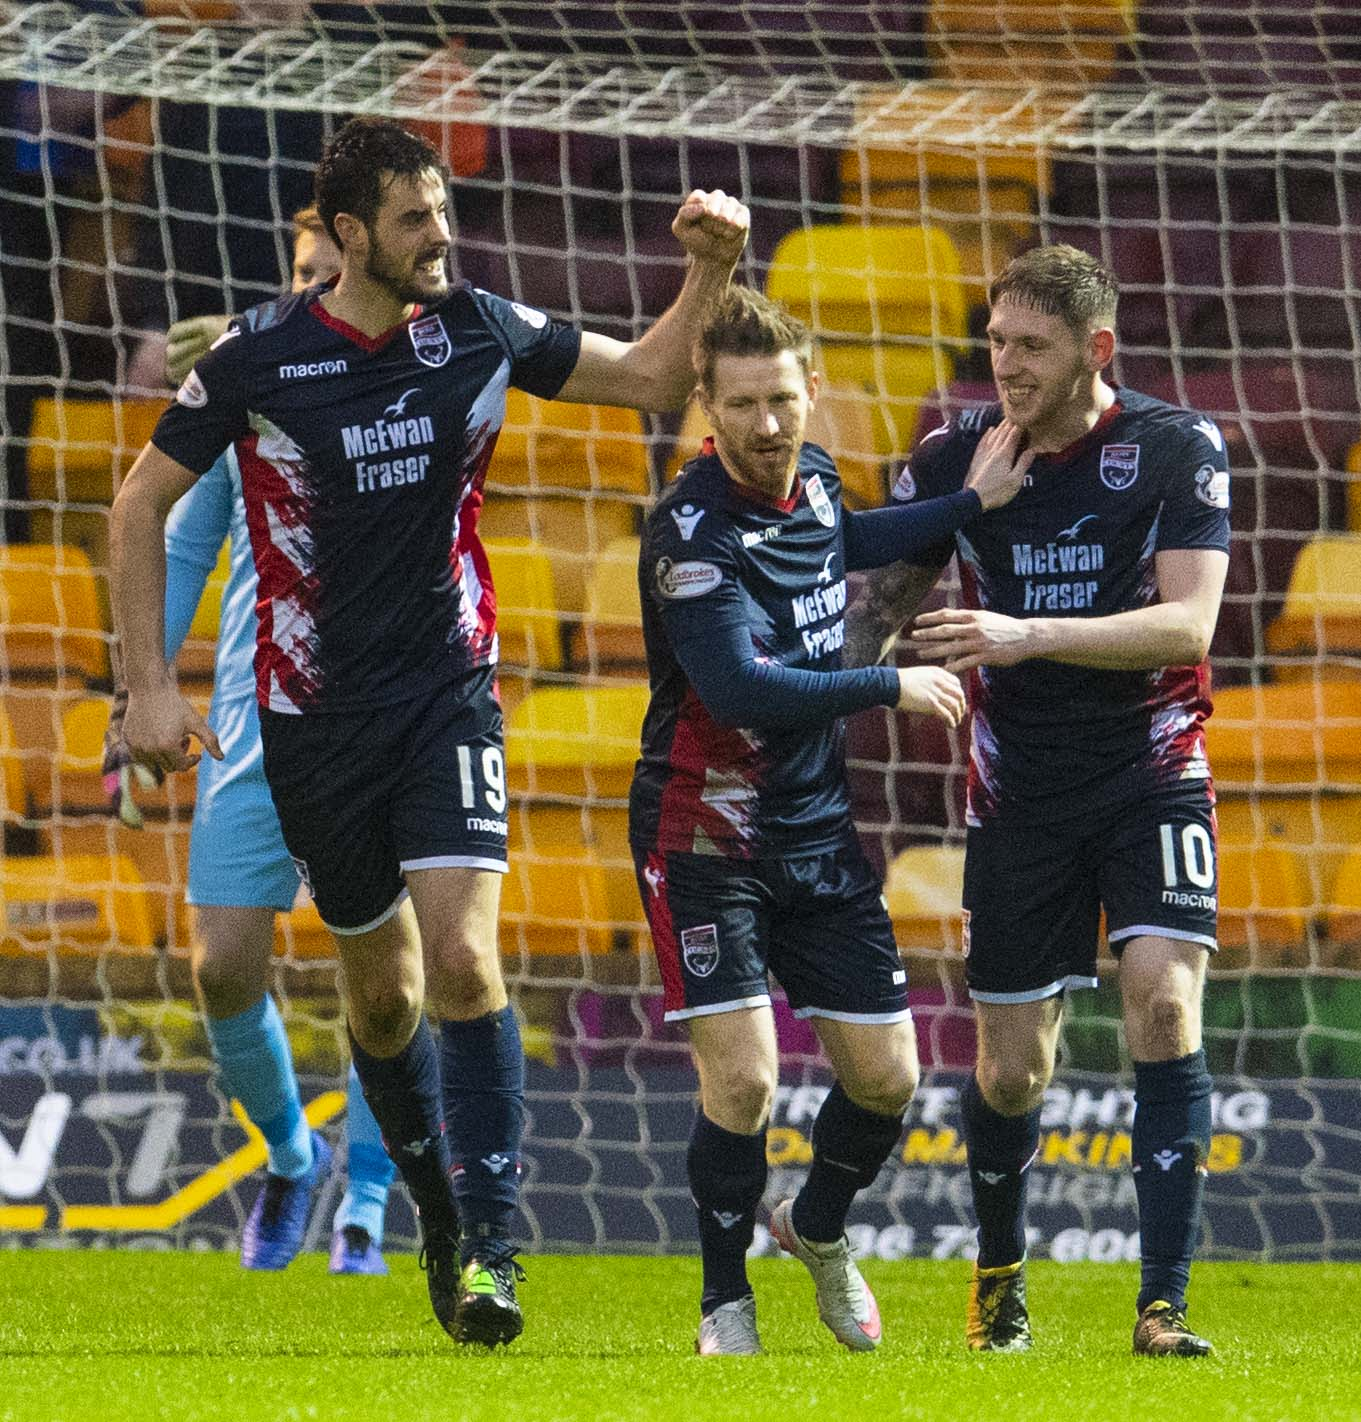 19/01/19 WILLIAM HILL SCOTTISH CUP 4TH ROUND MOTHERWELL v ROSS COUNTY FIR PARK - MOTHERWELL Ross County's Brian Graham (left) celebrates after he makes it 1-0